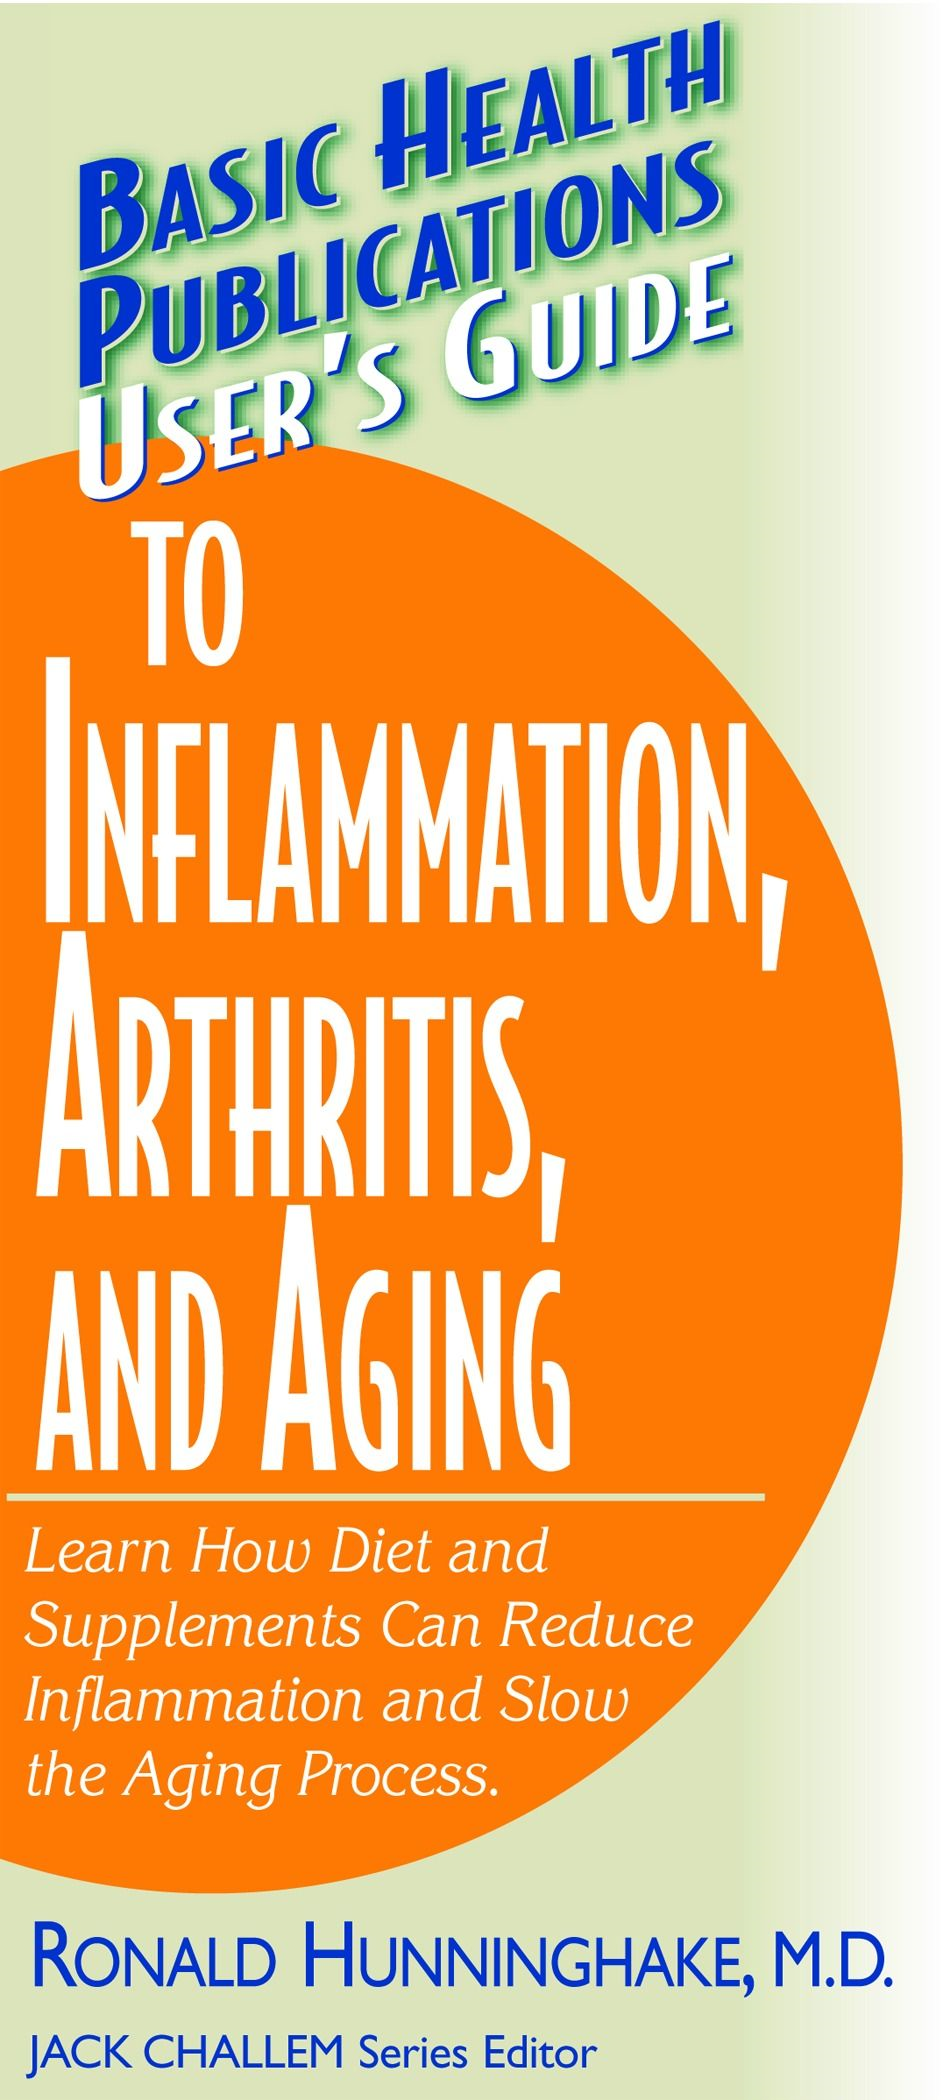 User's Guide to Inflammation Arthritis and Aging (Basic Health Publications User's Guide)